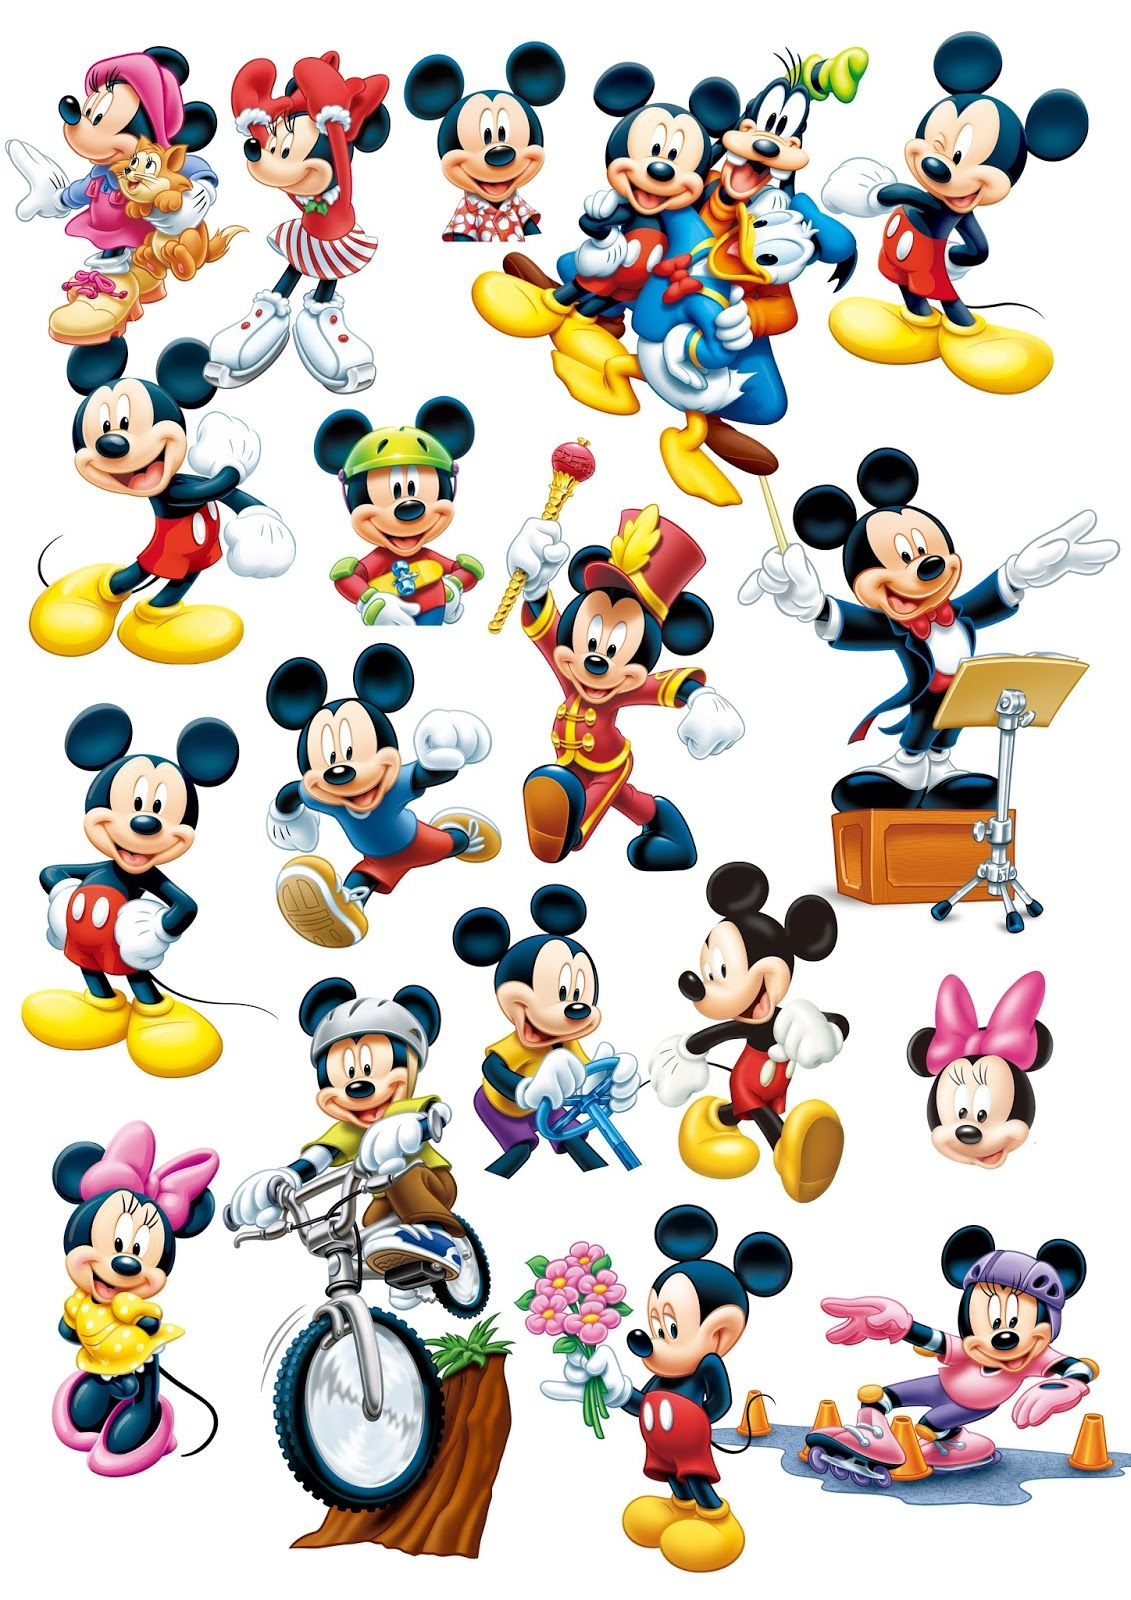 Micky Mouse Cartoon Psd Images Free Downloads Psd Files